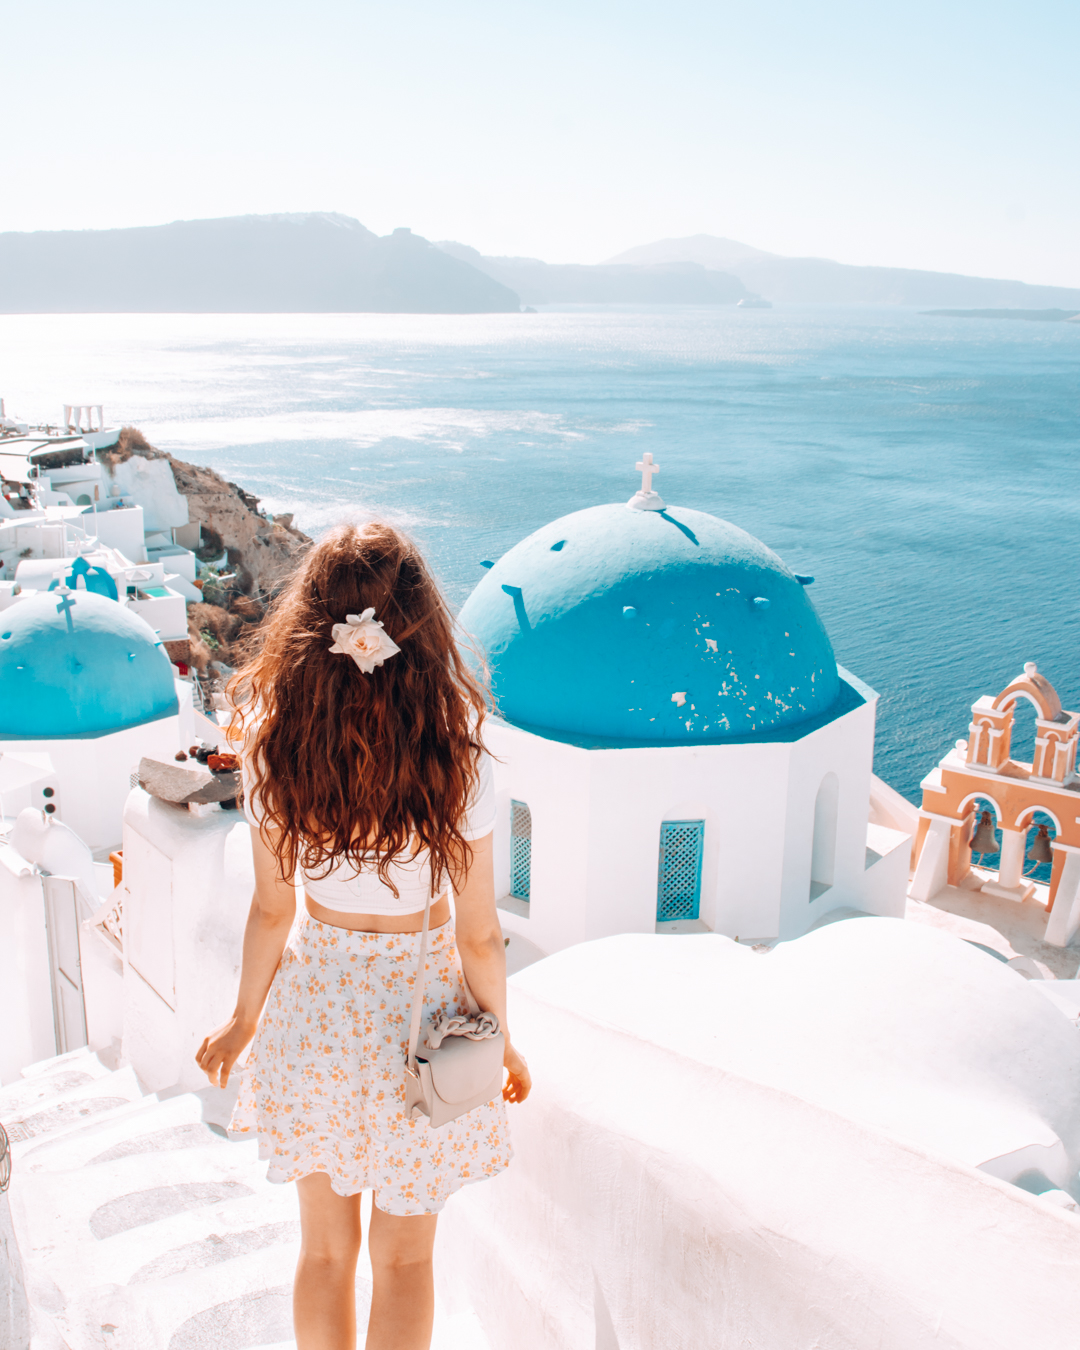 Girl in front of blue domes